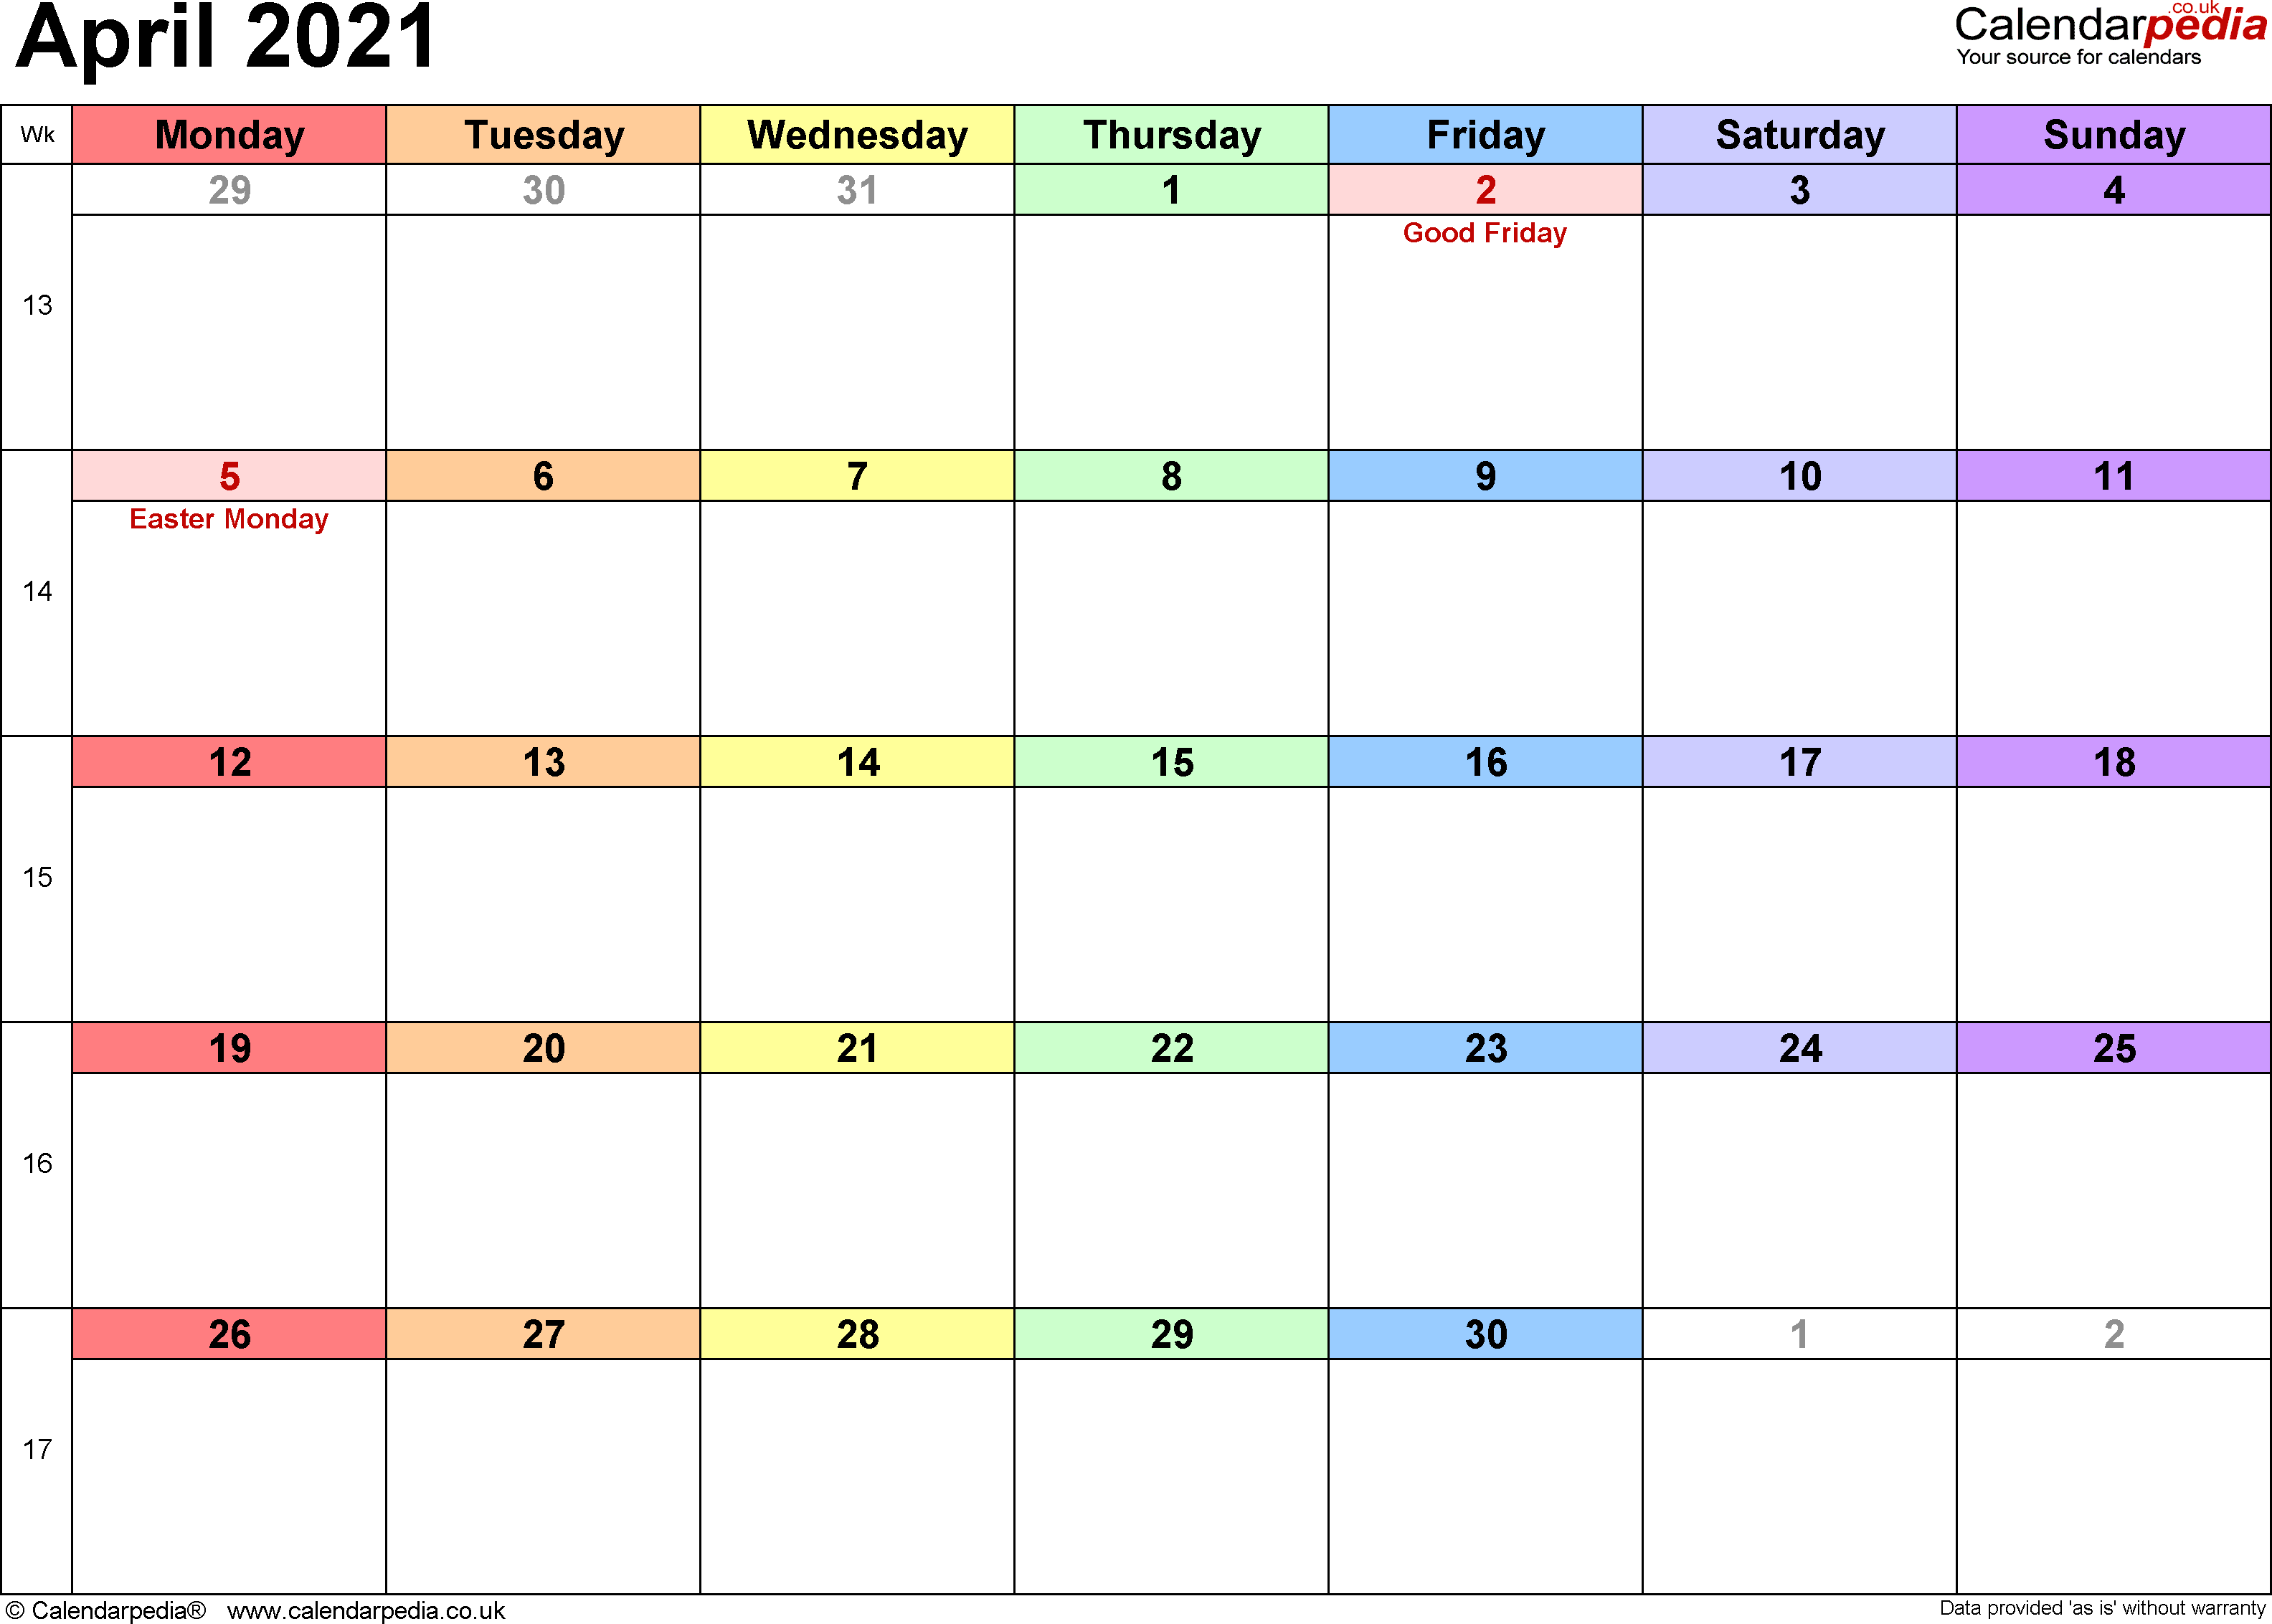 Calendar April 2021, landscape orientation, 1 page, with UK bank holidays and week numbers